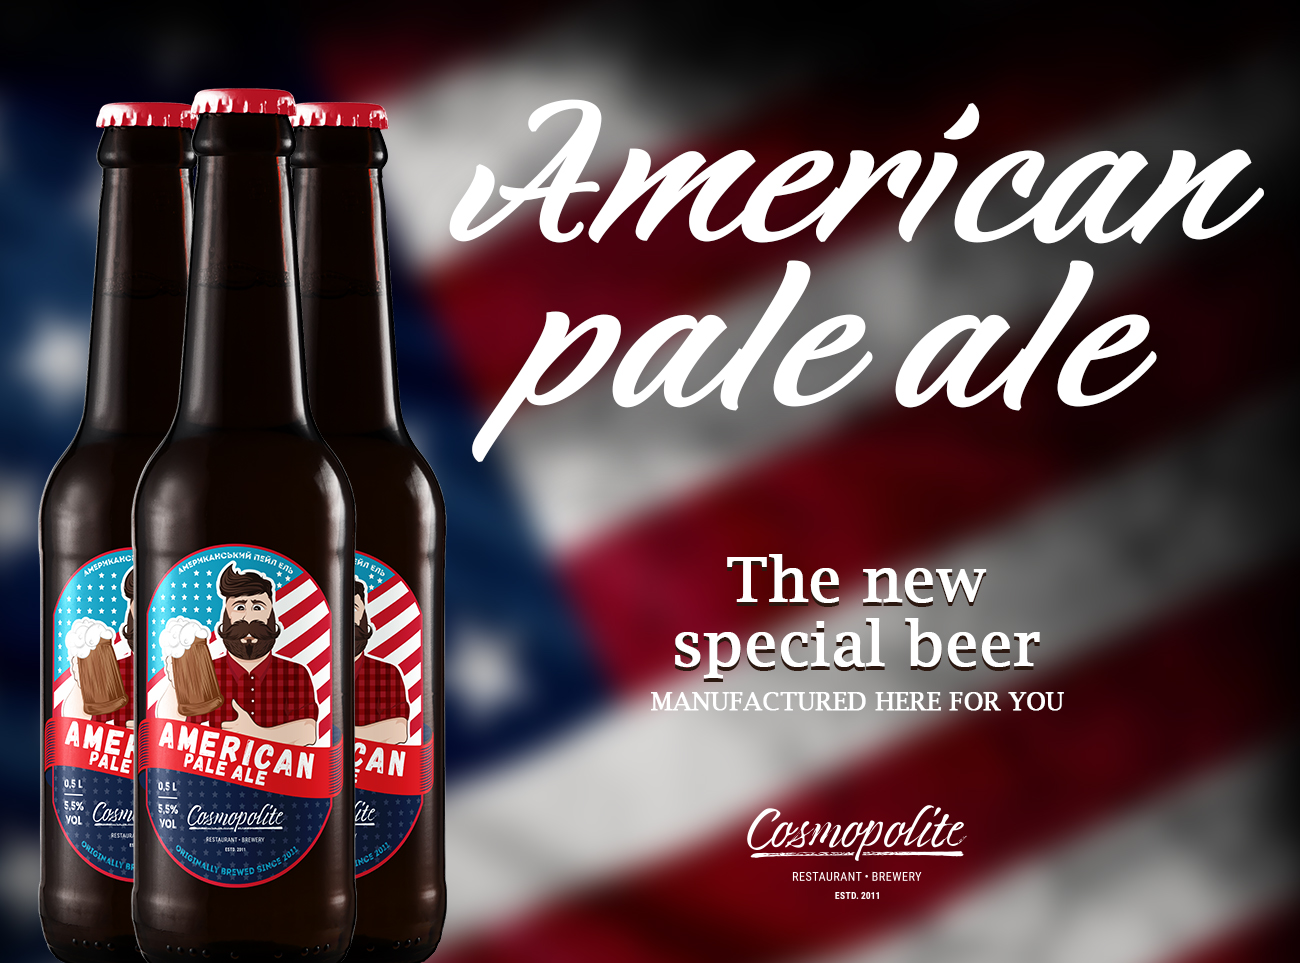 American Pale Ale - at Cosmopolite! Meet the new sort!